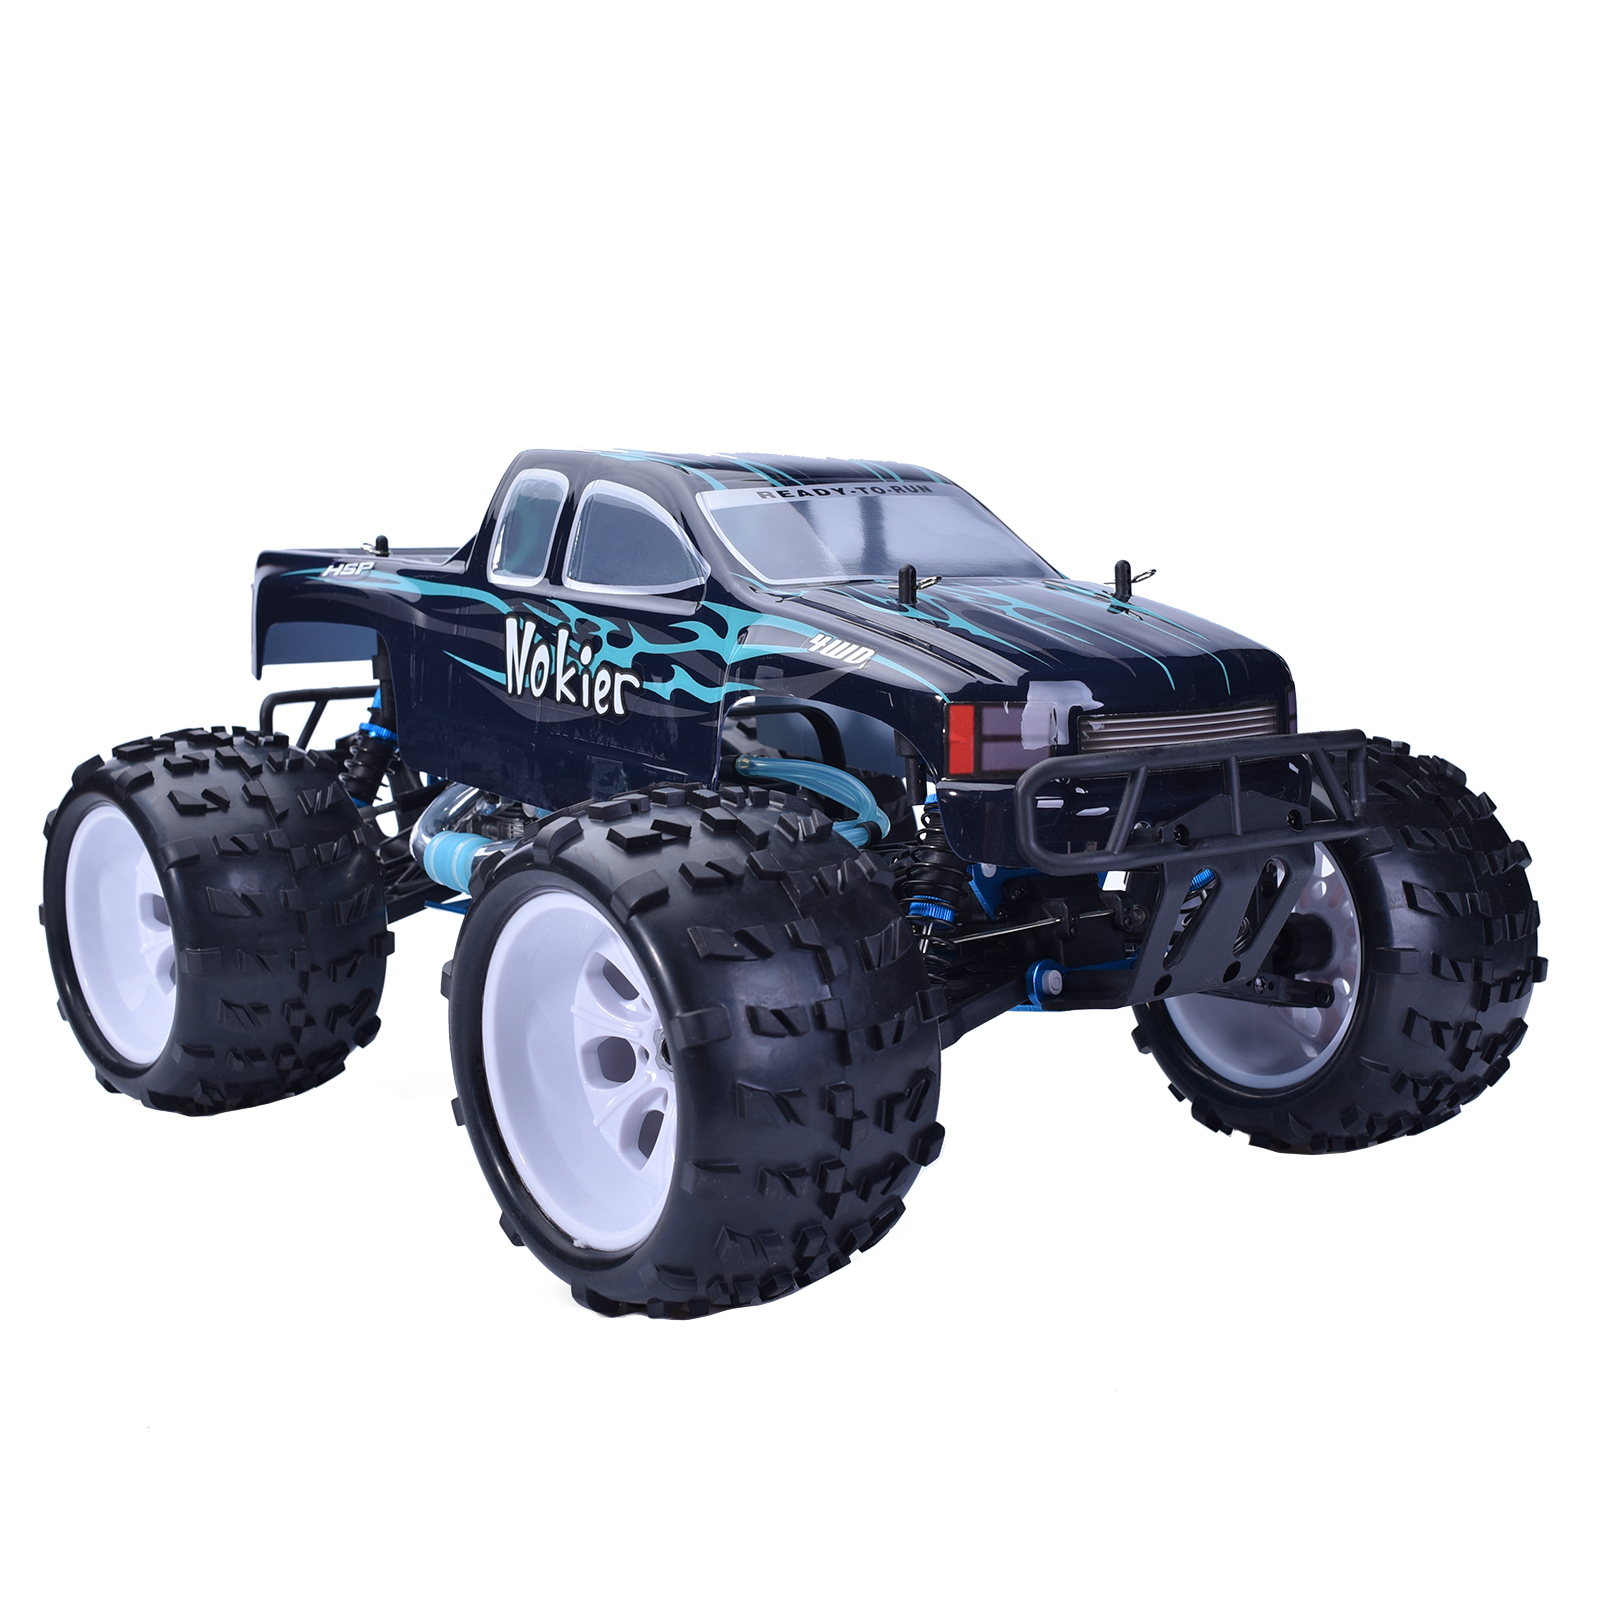 Best Rc Truck 4x4 : Hsp rtr ghz nitro speed rc car off road